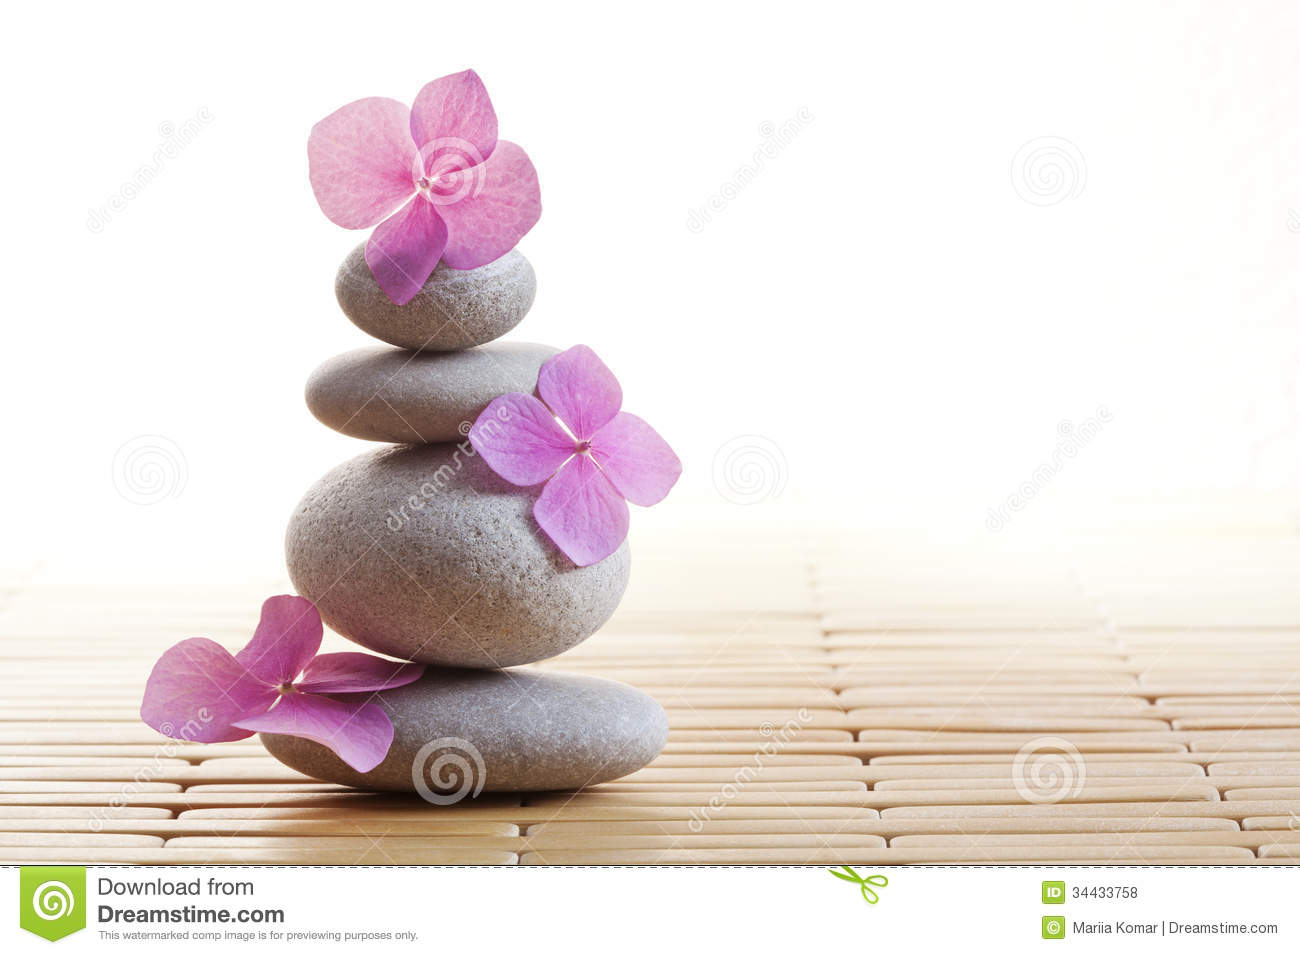 Zen Stones And Flowers Royalty Free Stock Photos - Image: 34433758